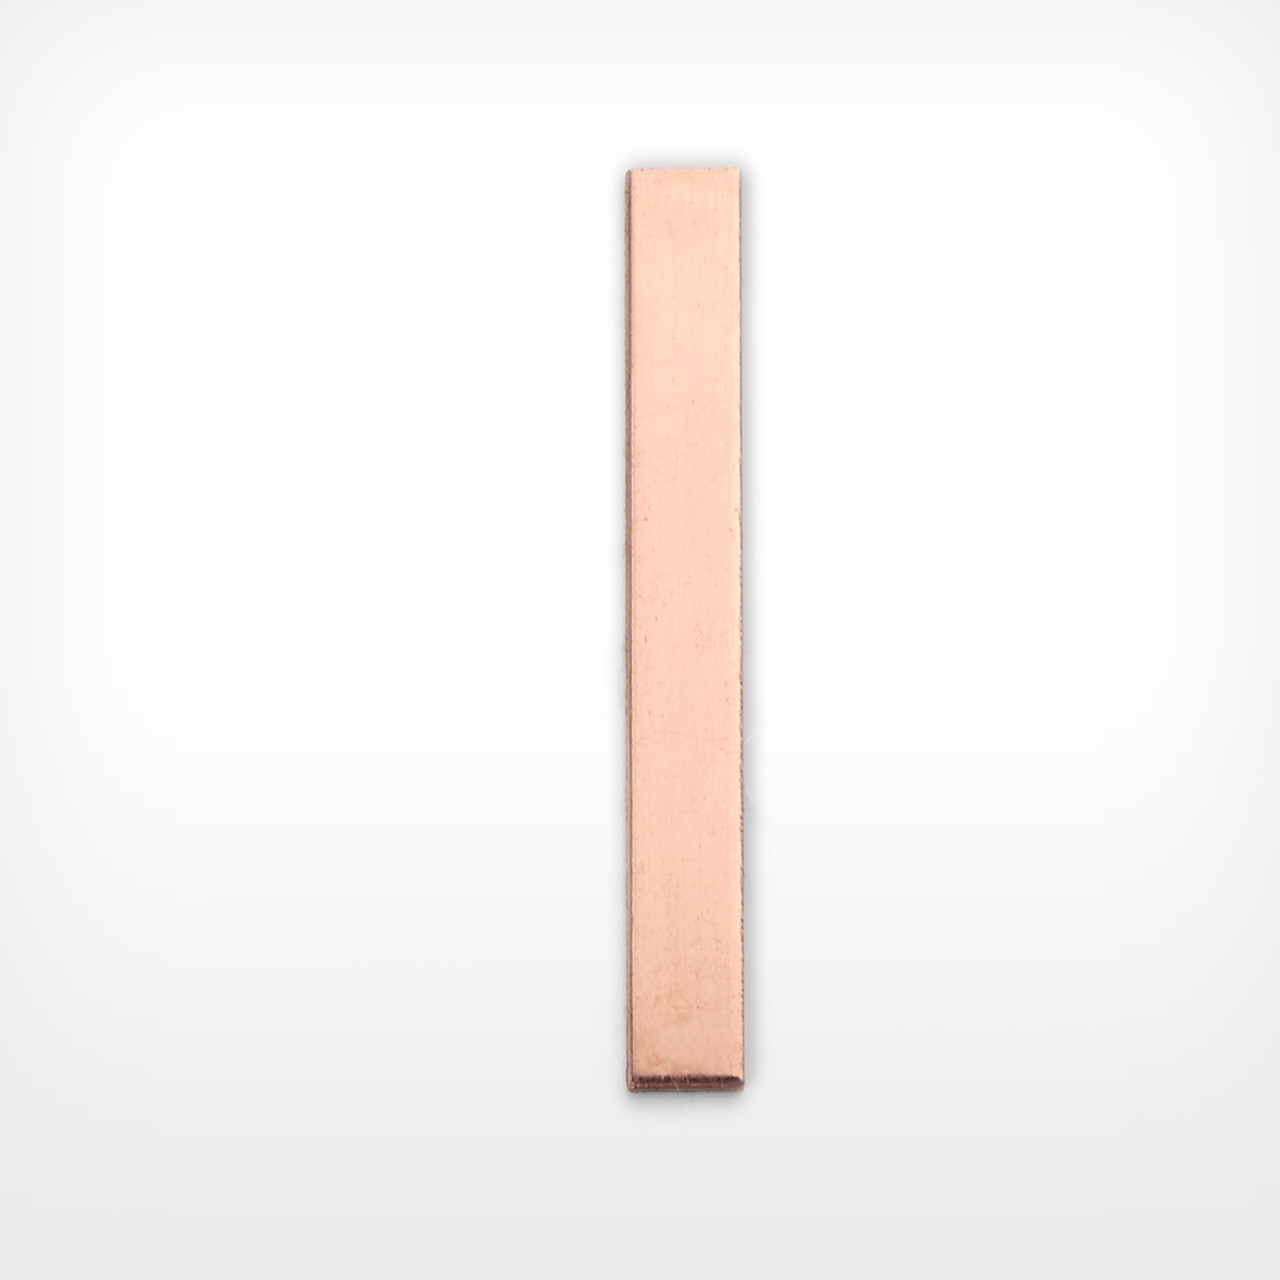 Copper Blank Rectangle Stamped Shape for Enamelling & Other Crafts